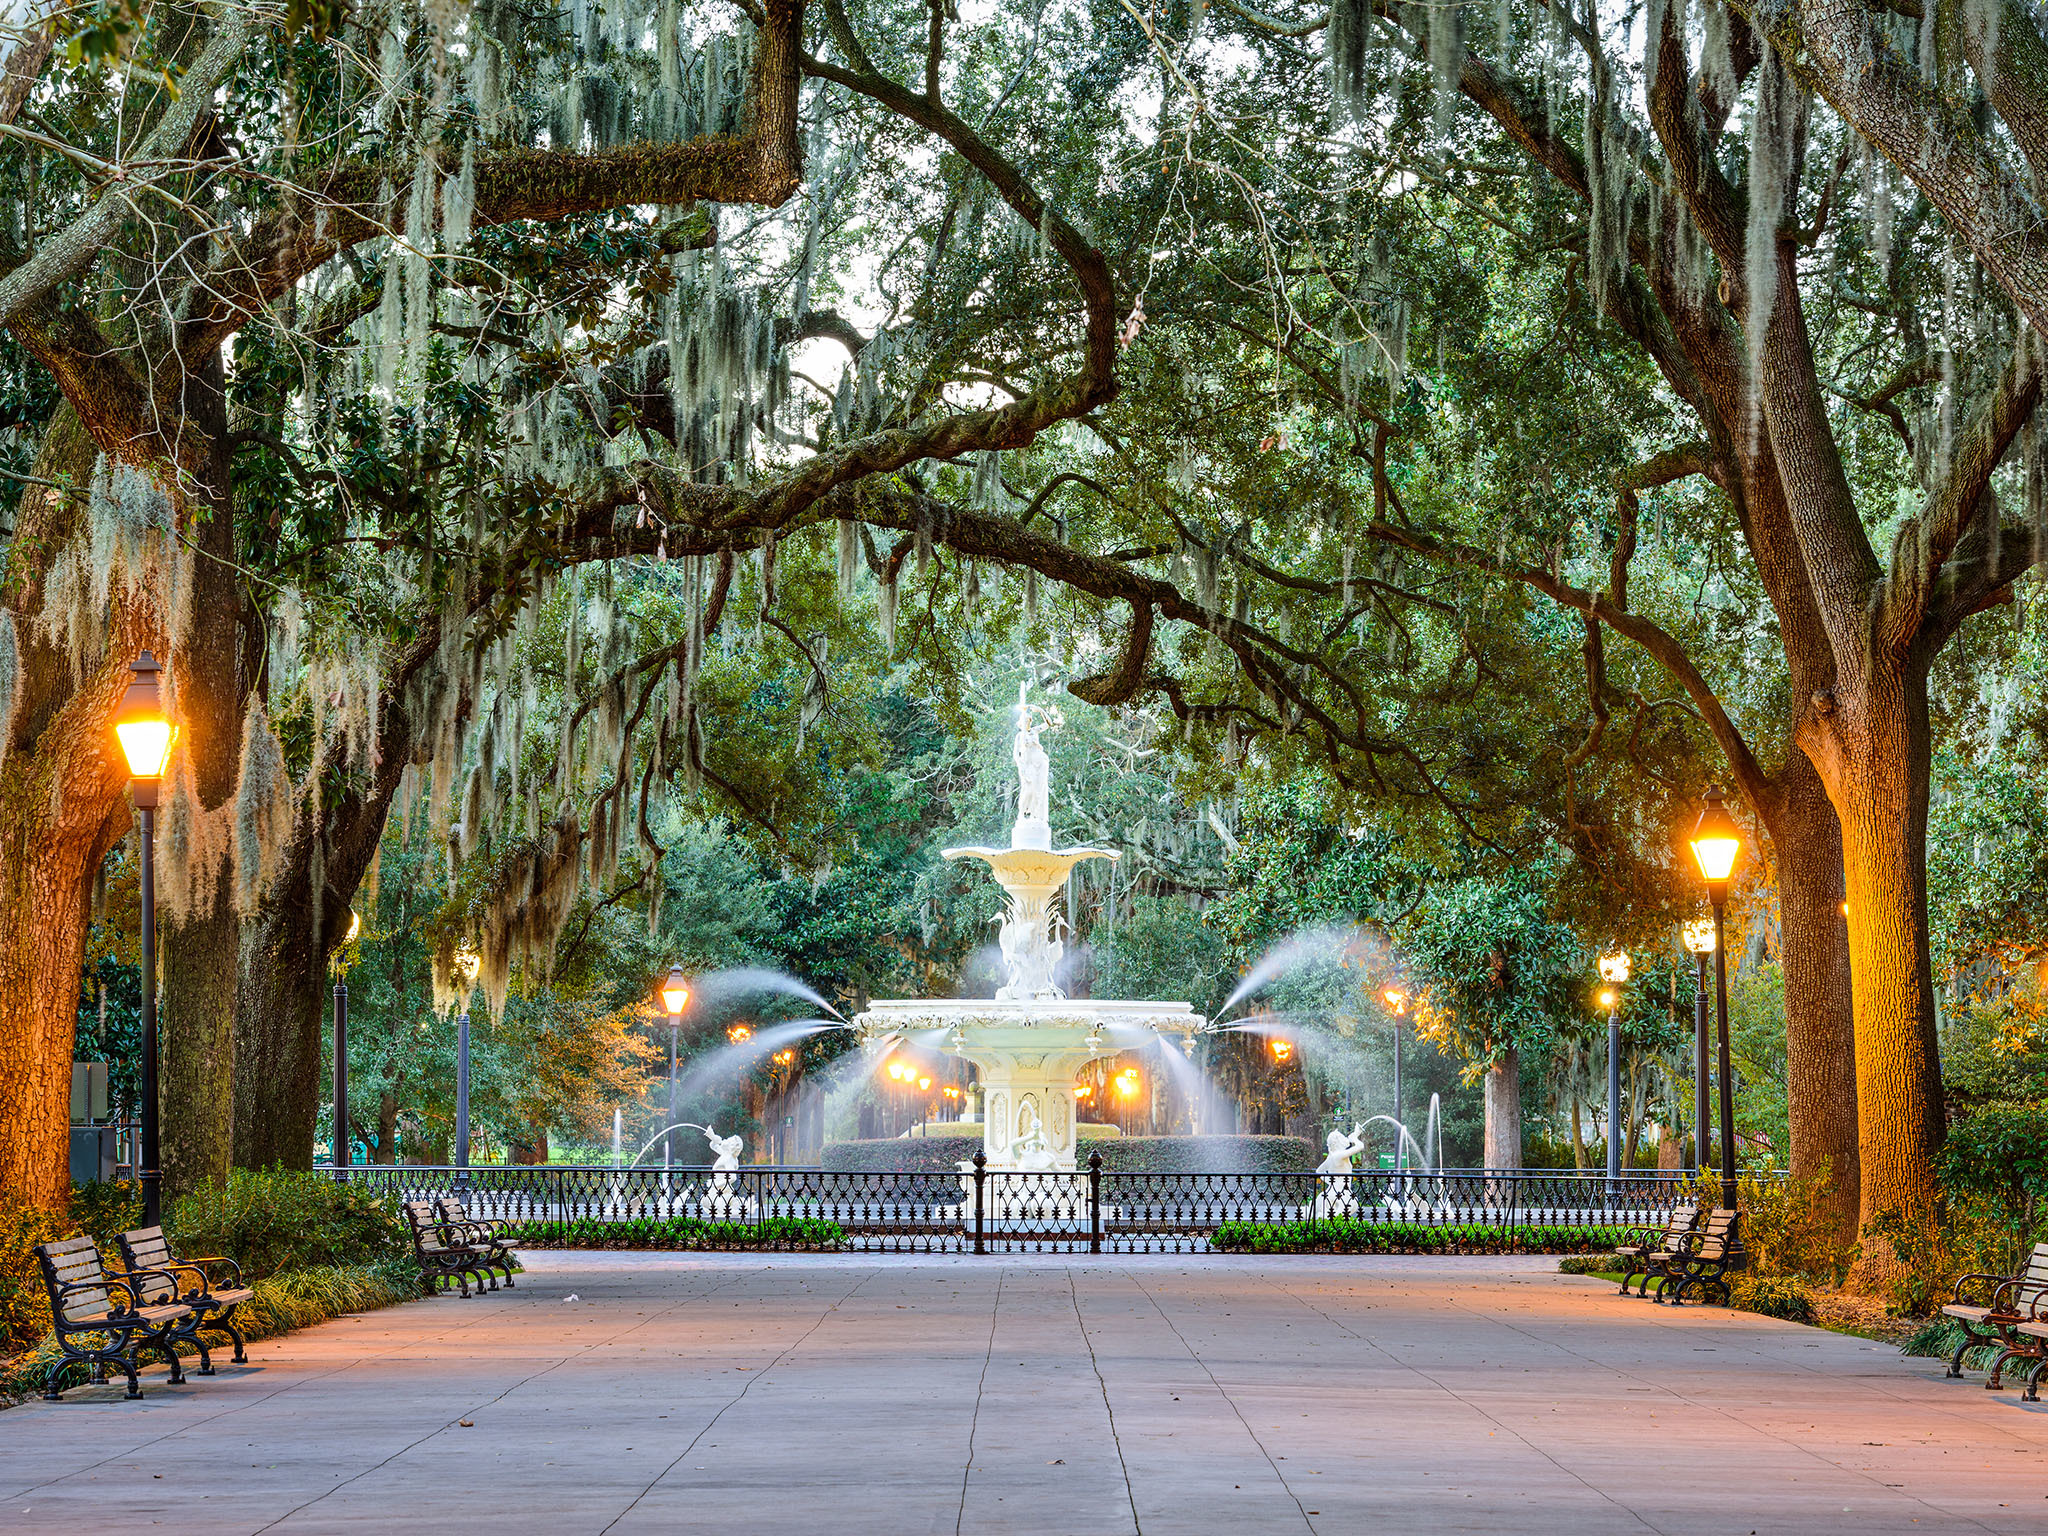 The 15 best things to do in Savannah